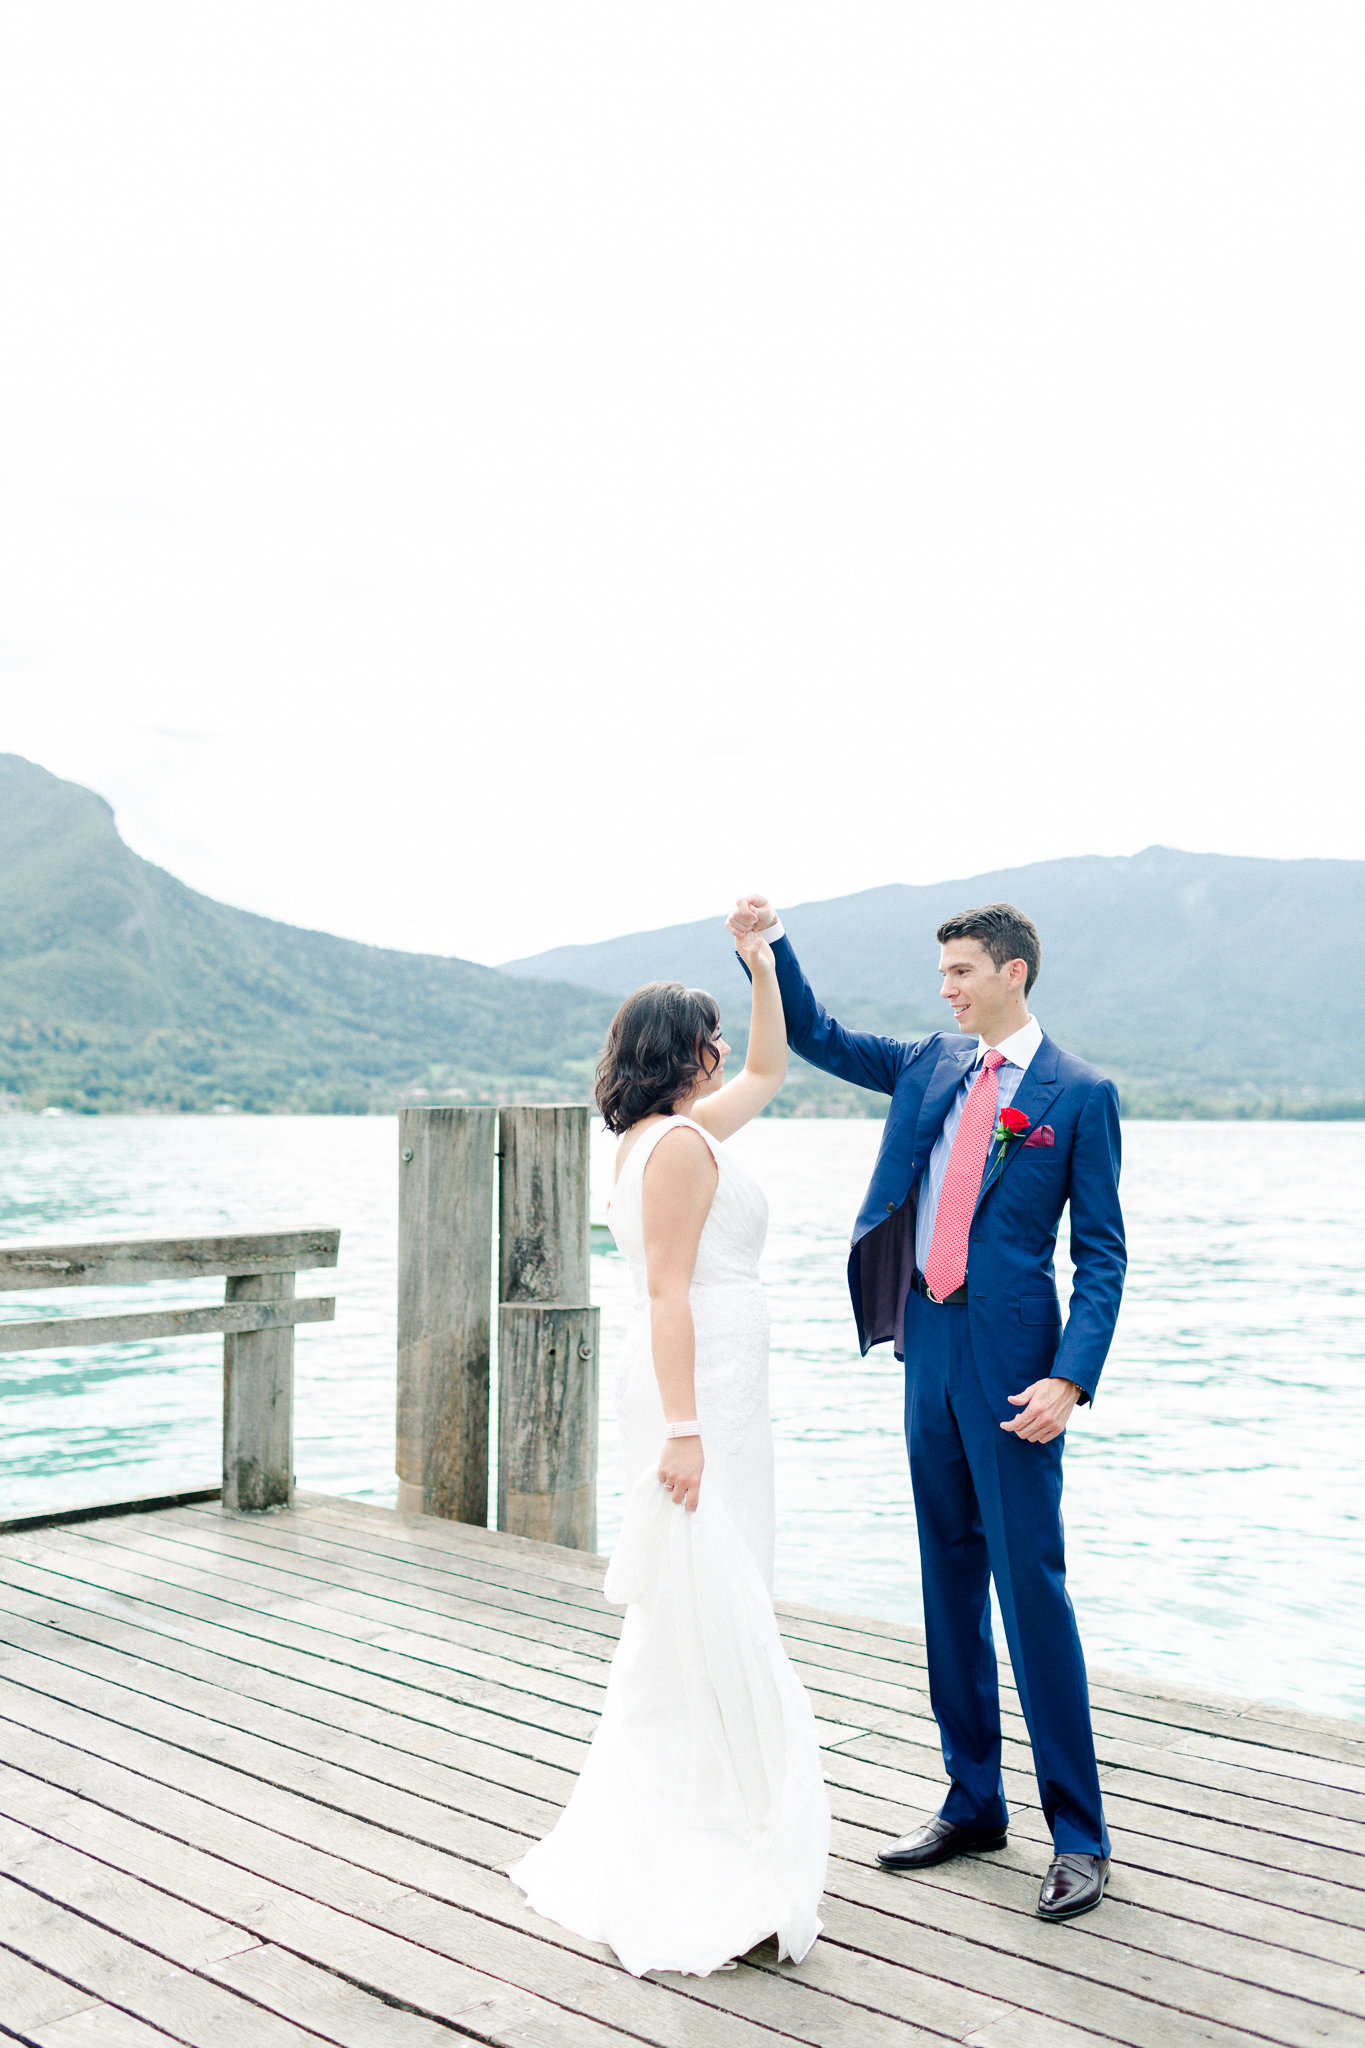 photographe-mariage-talloires-france-lisa-renault-photographie-wedding-destination-photographer-68